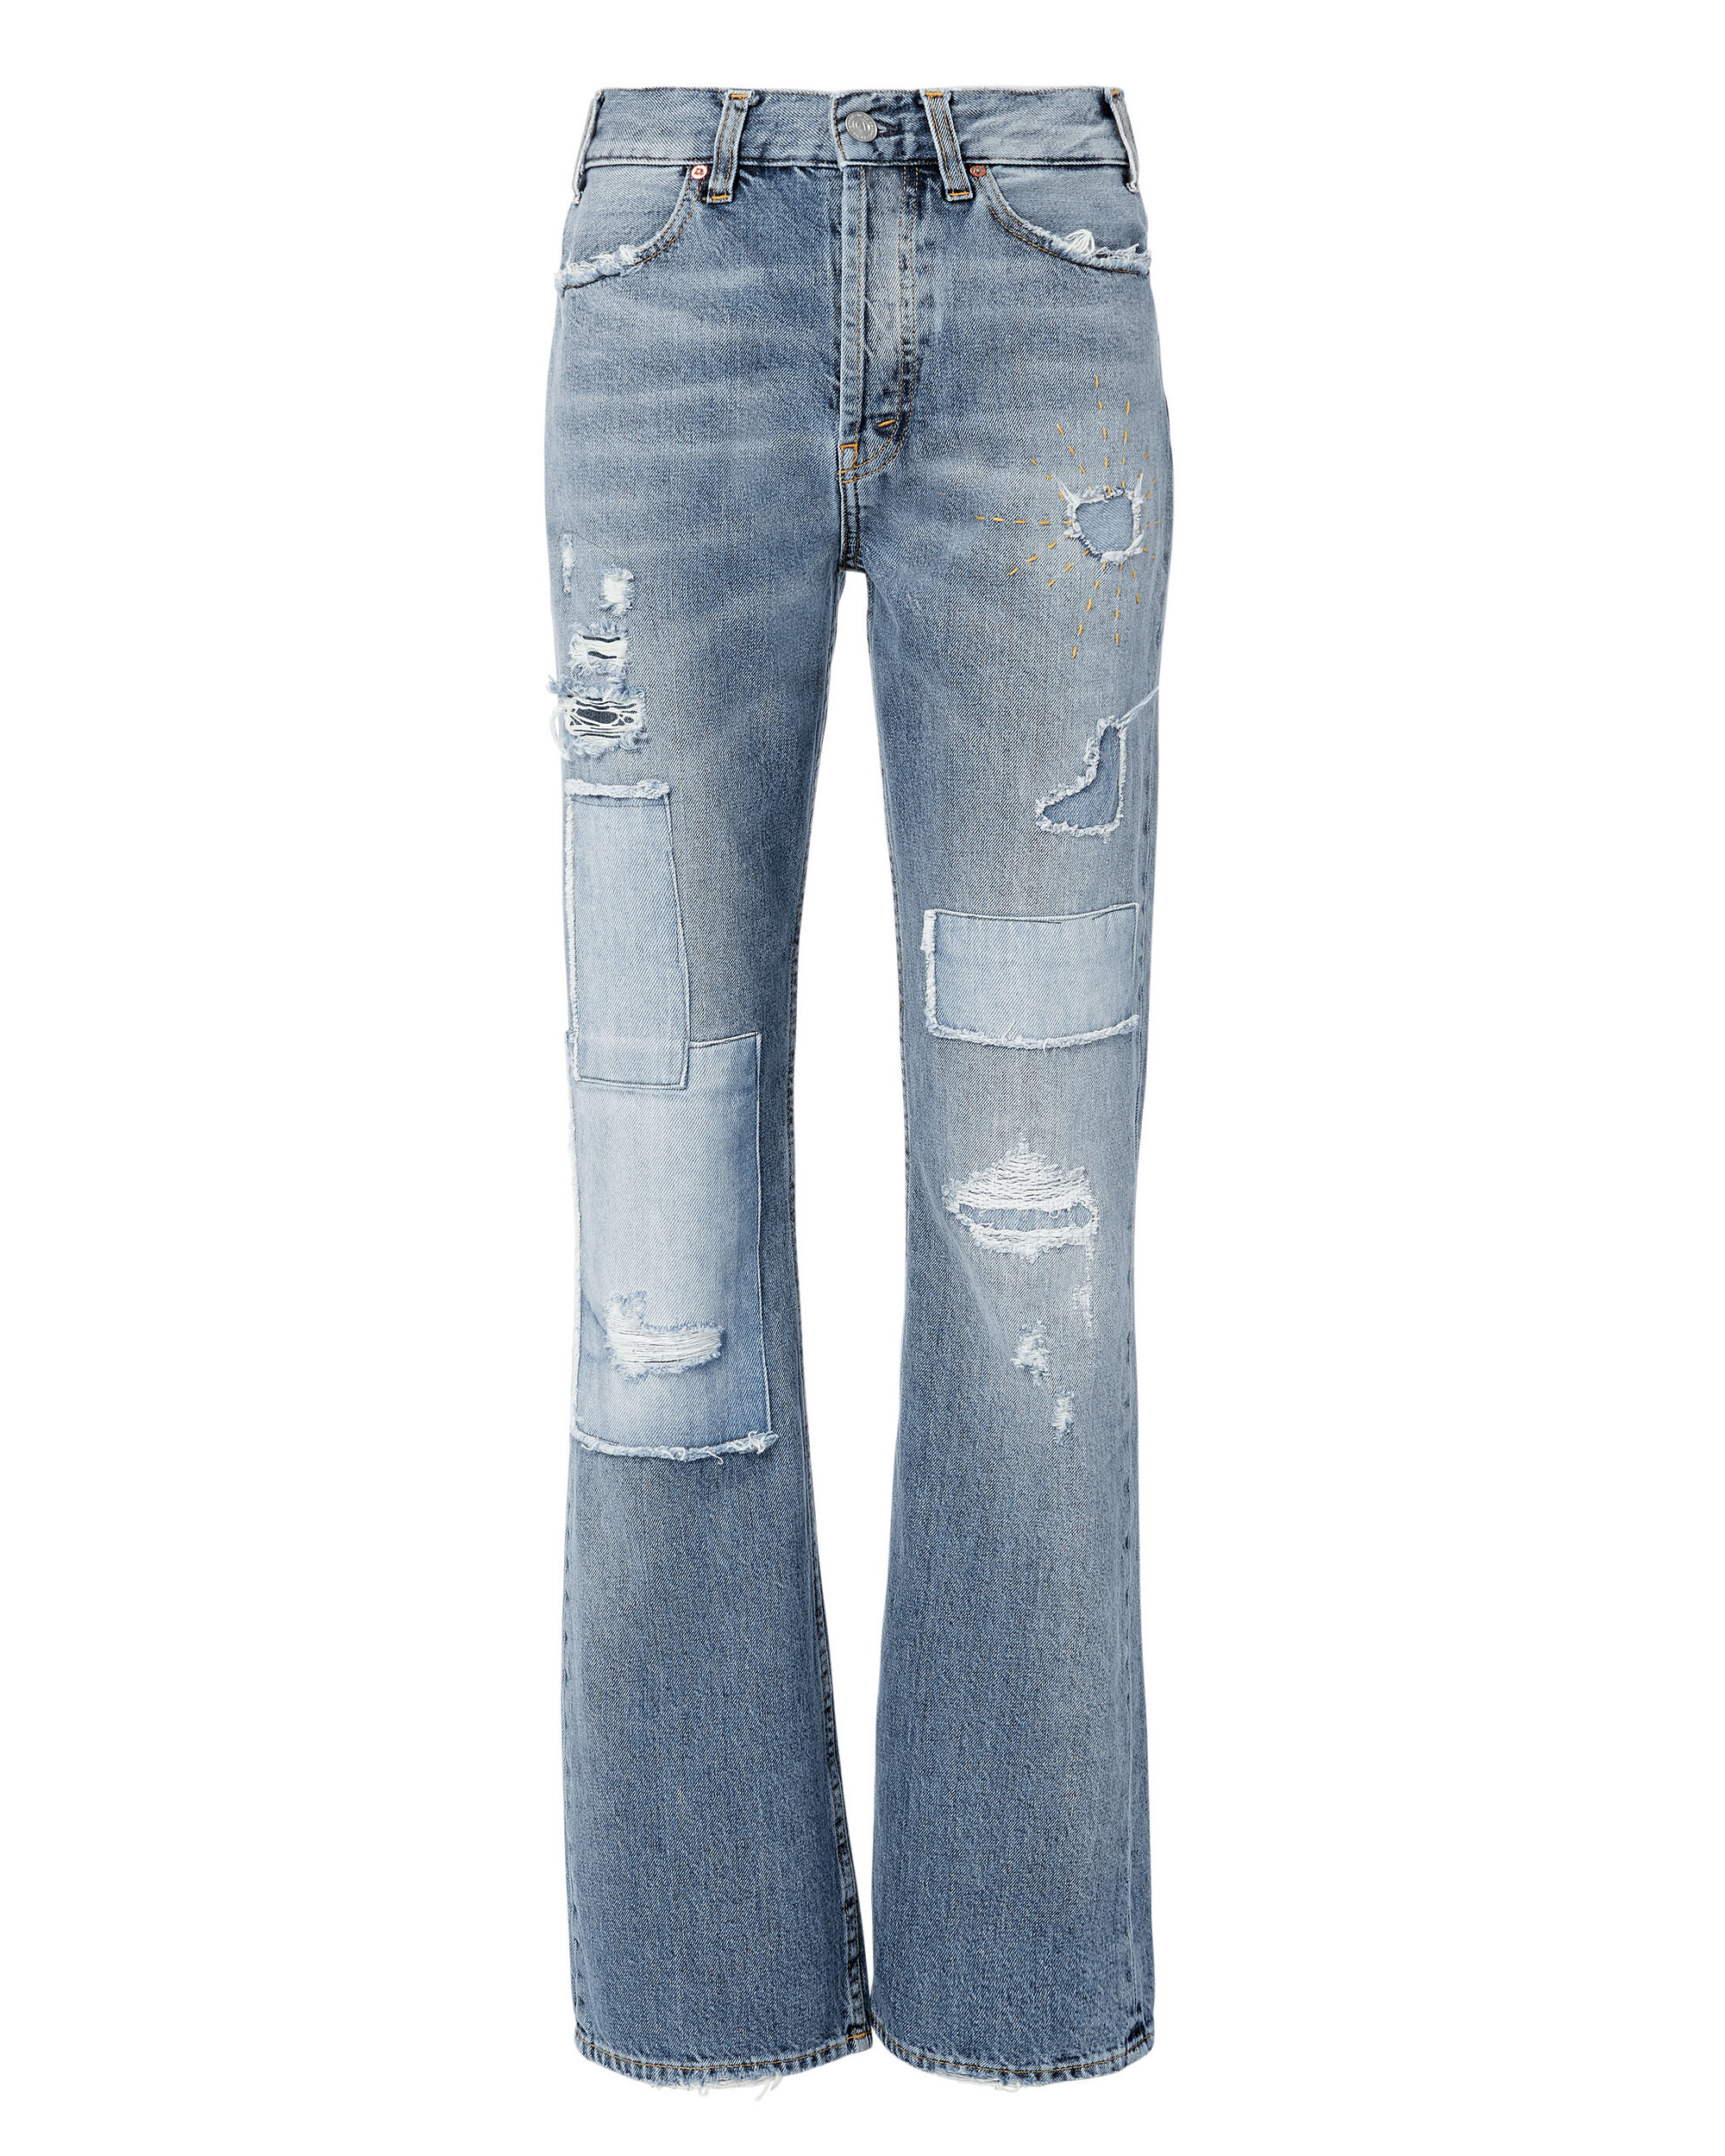 Stella Bell Bottom Jeans, DENIM, hi-res